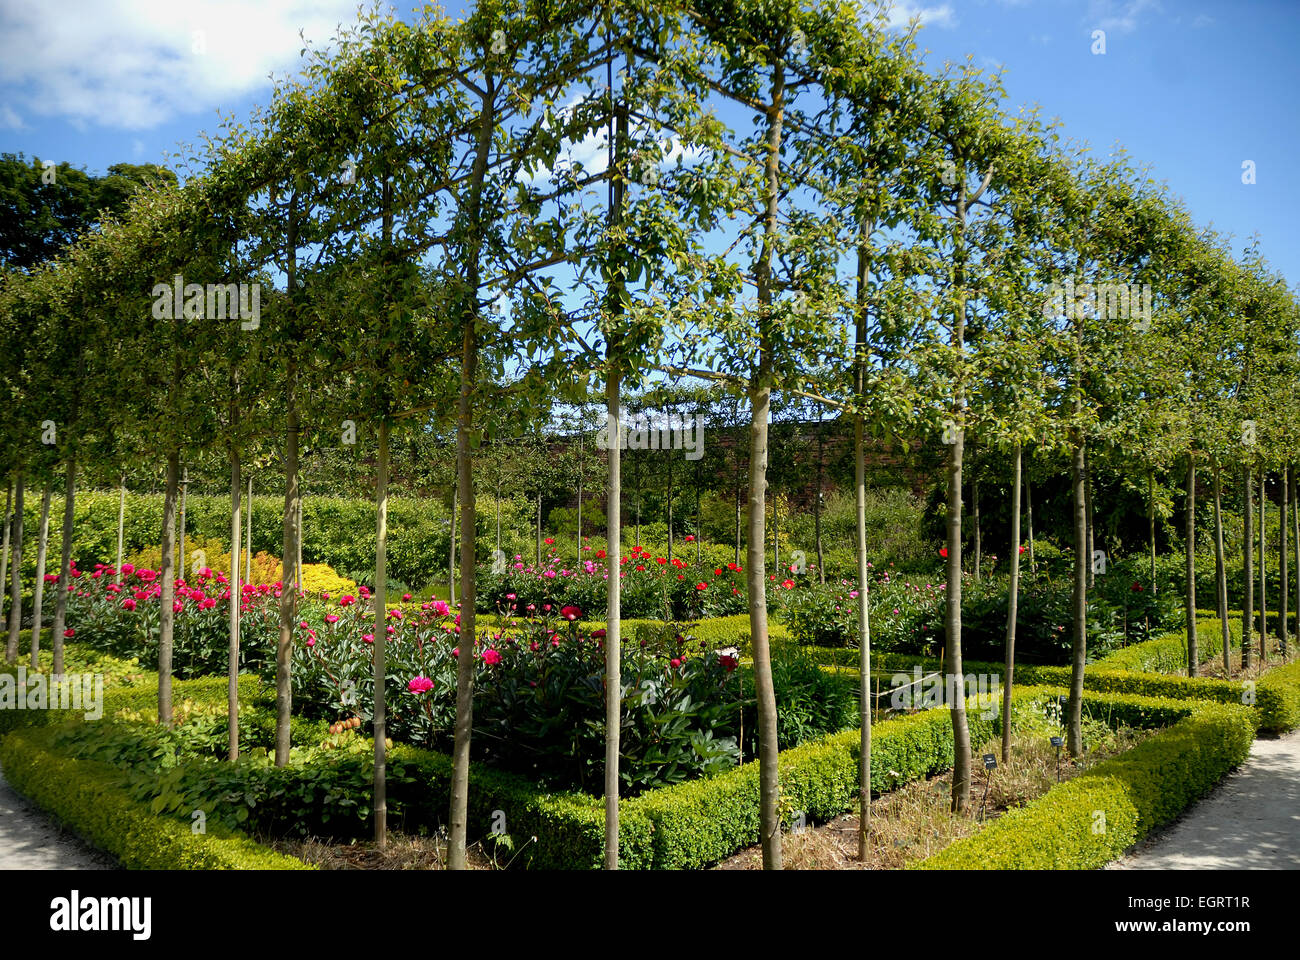 Espaliered Trees Stock Photos Espaliered Trees Stock Images Alamy